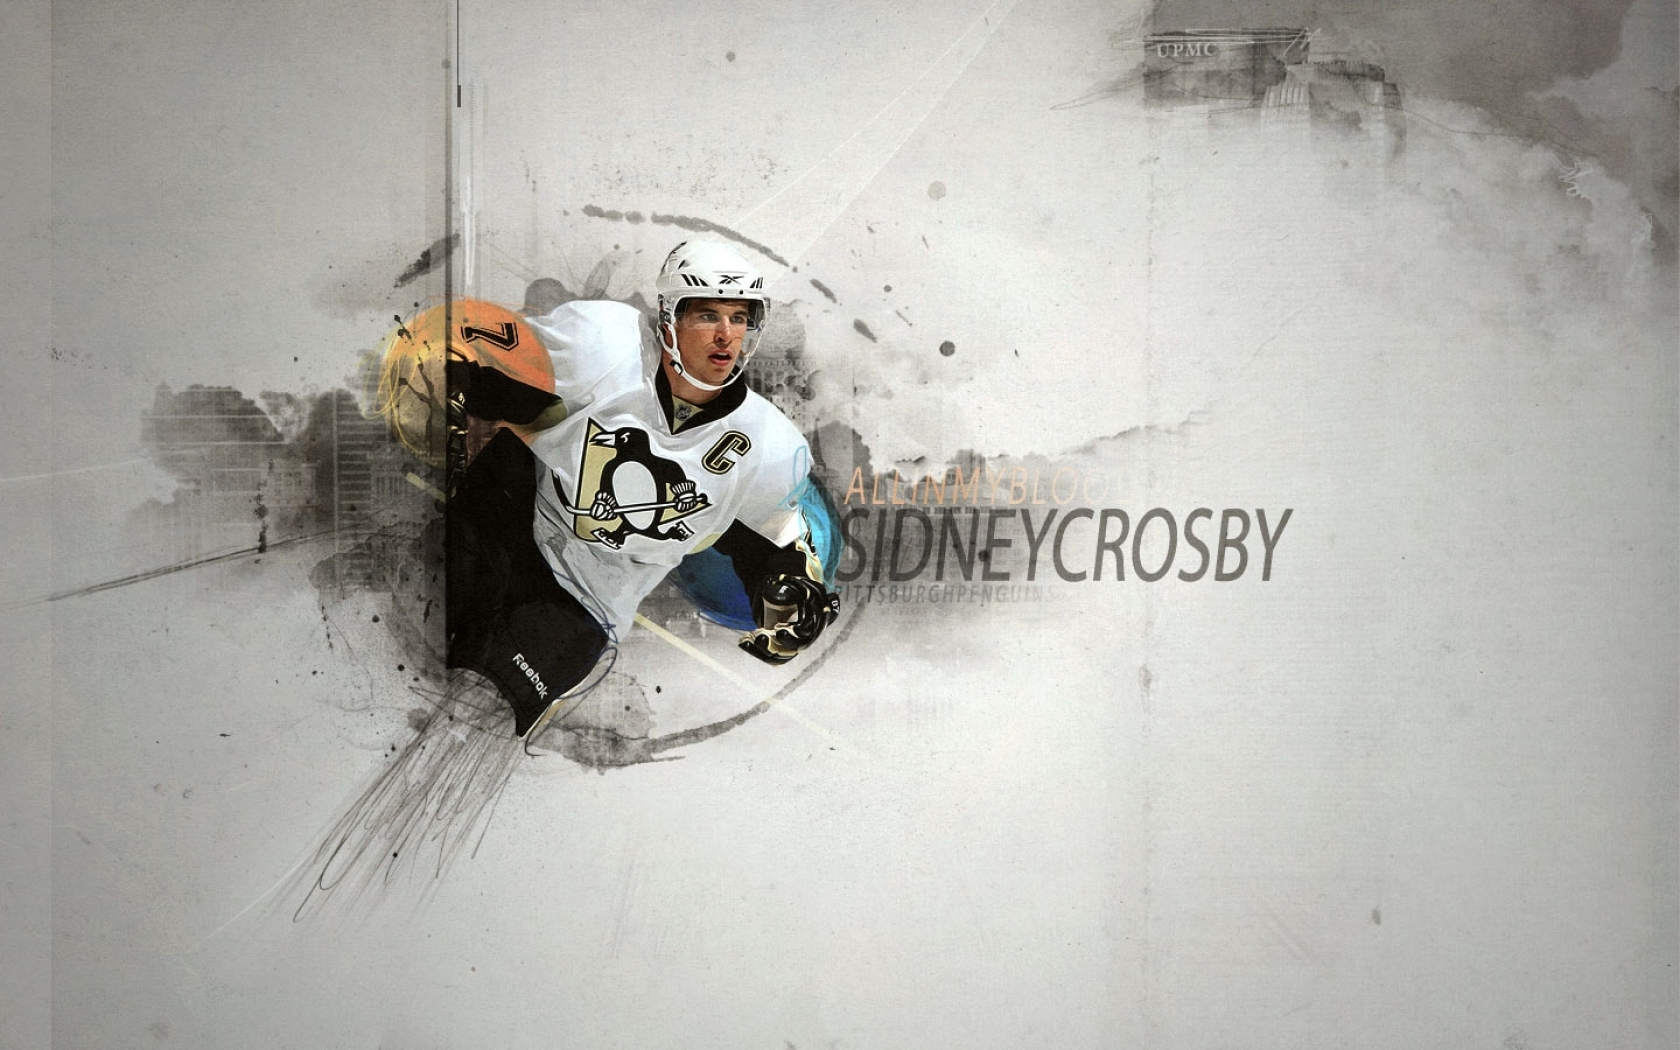 sidney crosby wallpaper nhl - photo #10